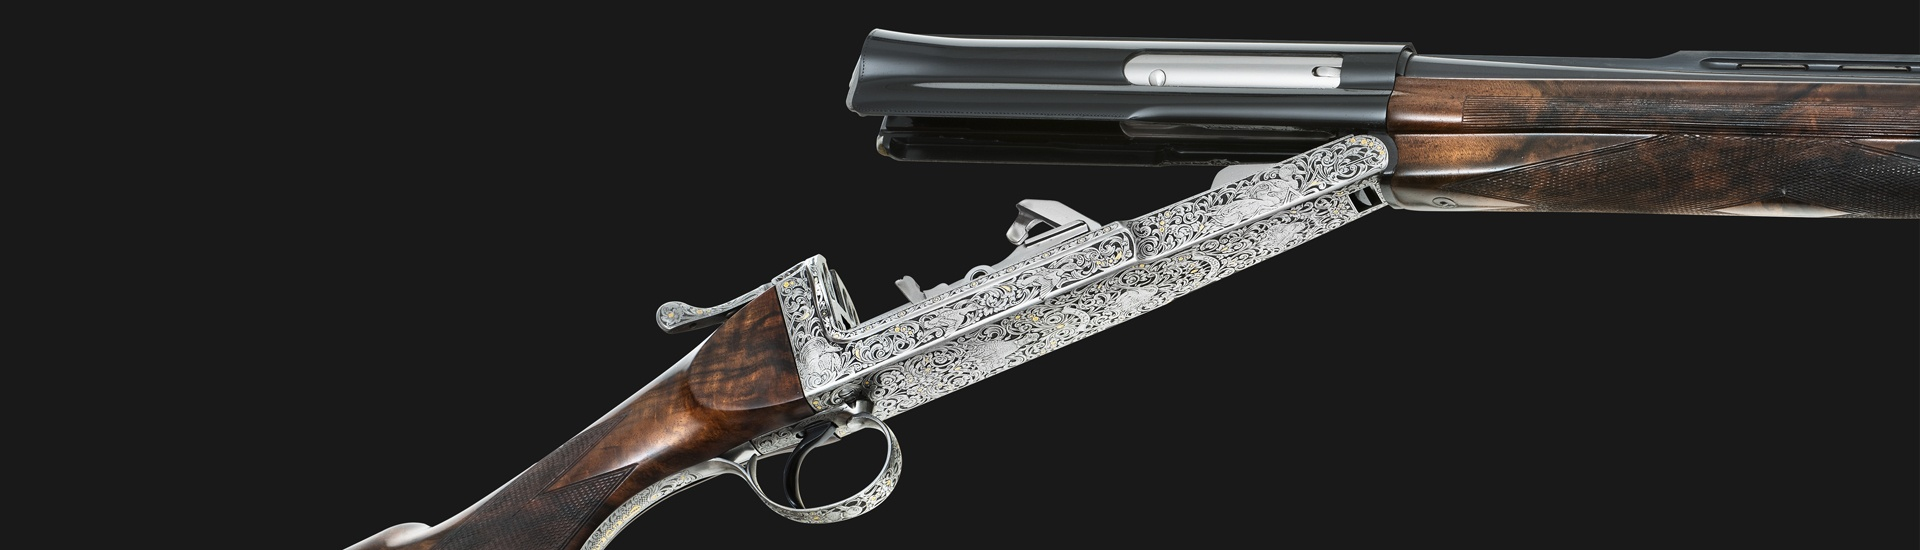 Semi-automatique Cosmi Superleggero